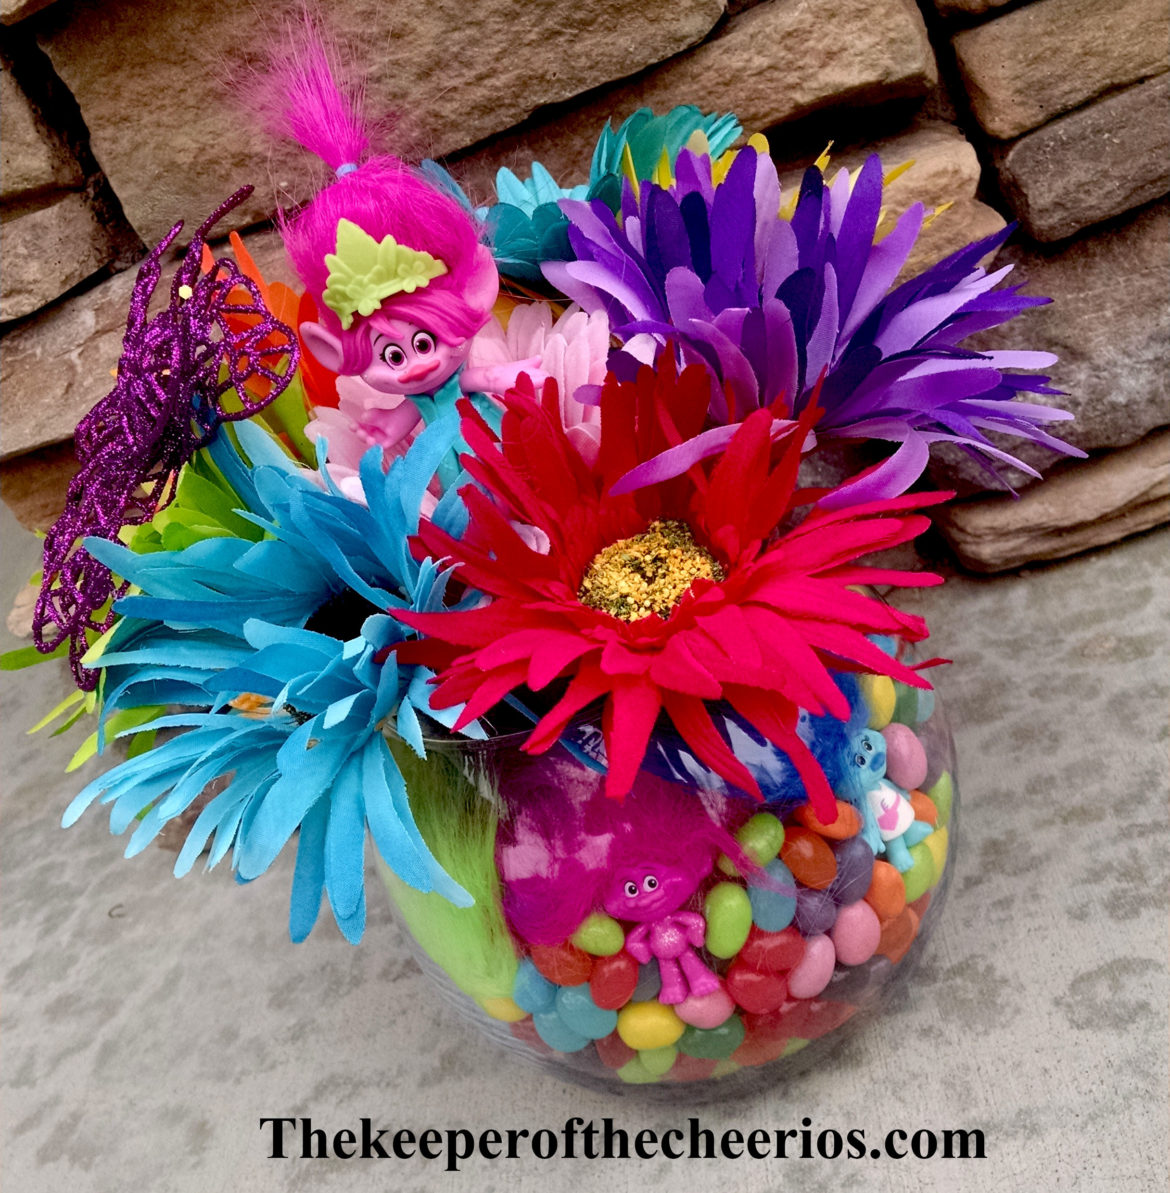 Trolls Party Centerpiece Idea The Keeper Of The Cheerios